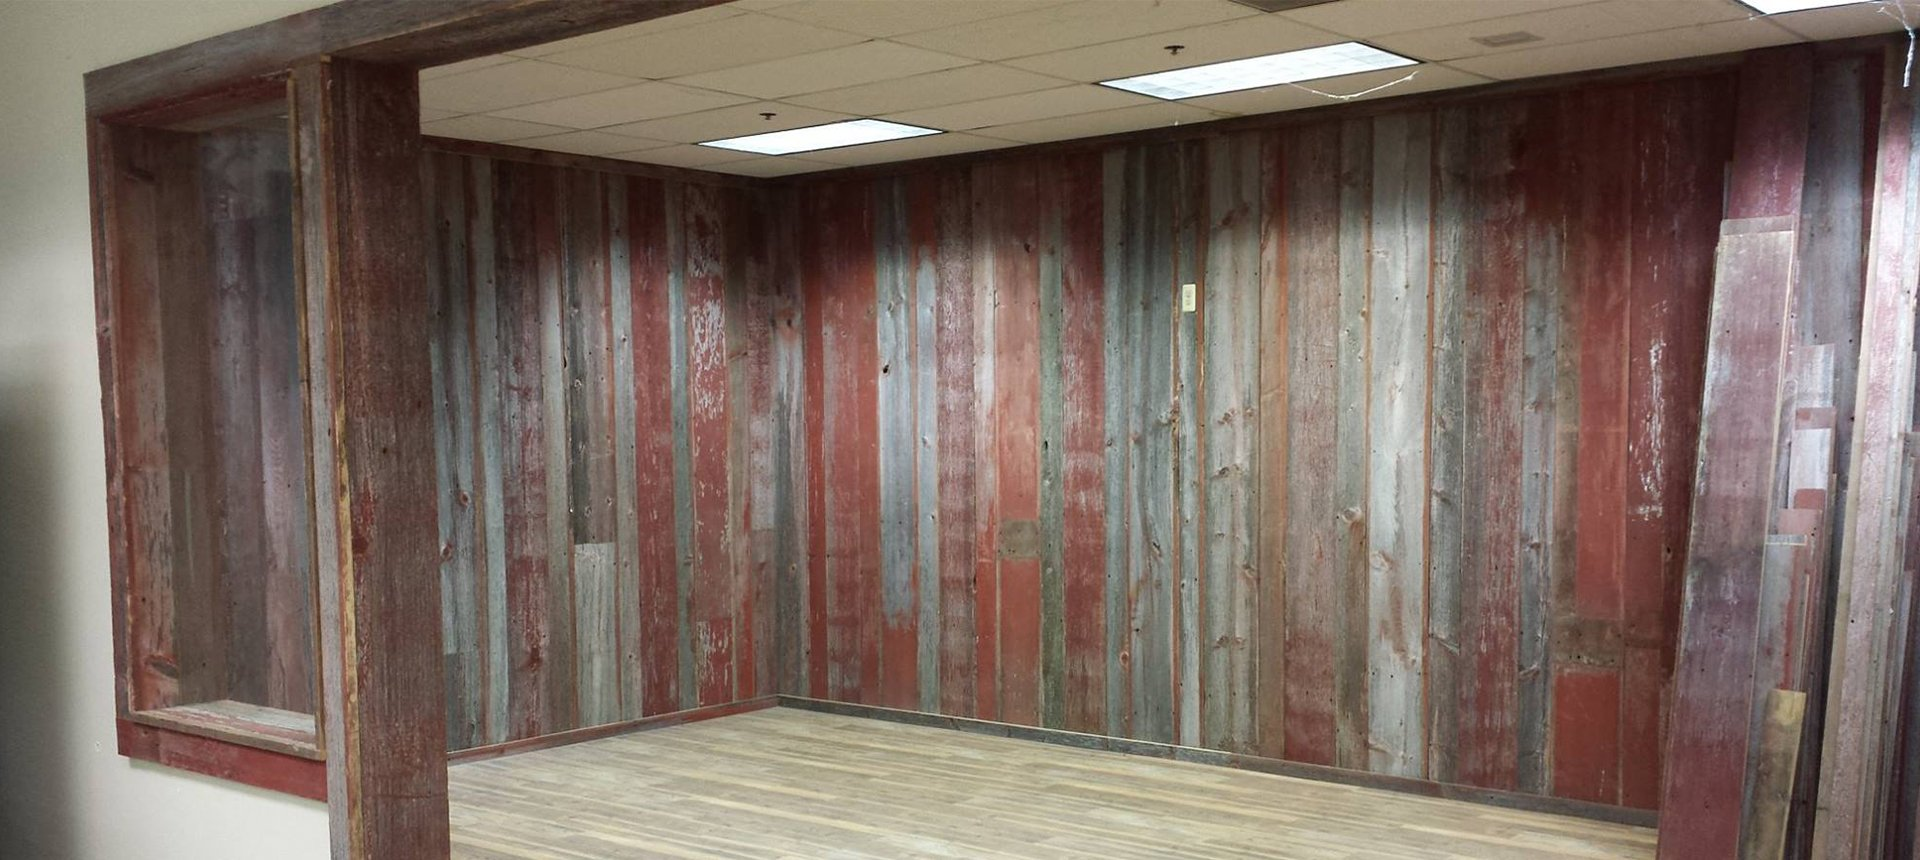 The best reclaimed barn wood in north america for Recycled wood siding